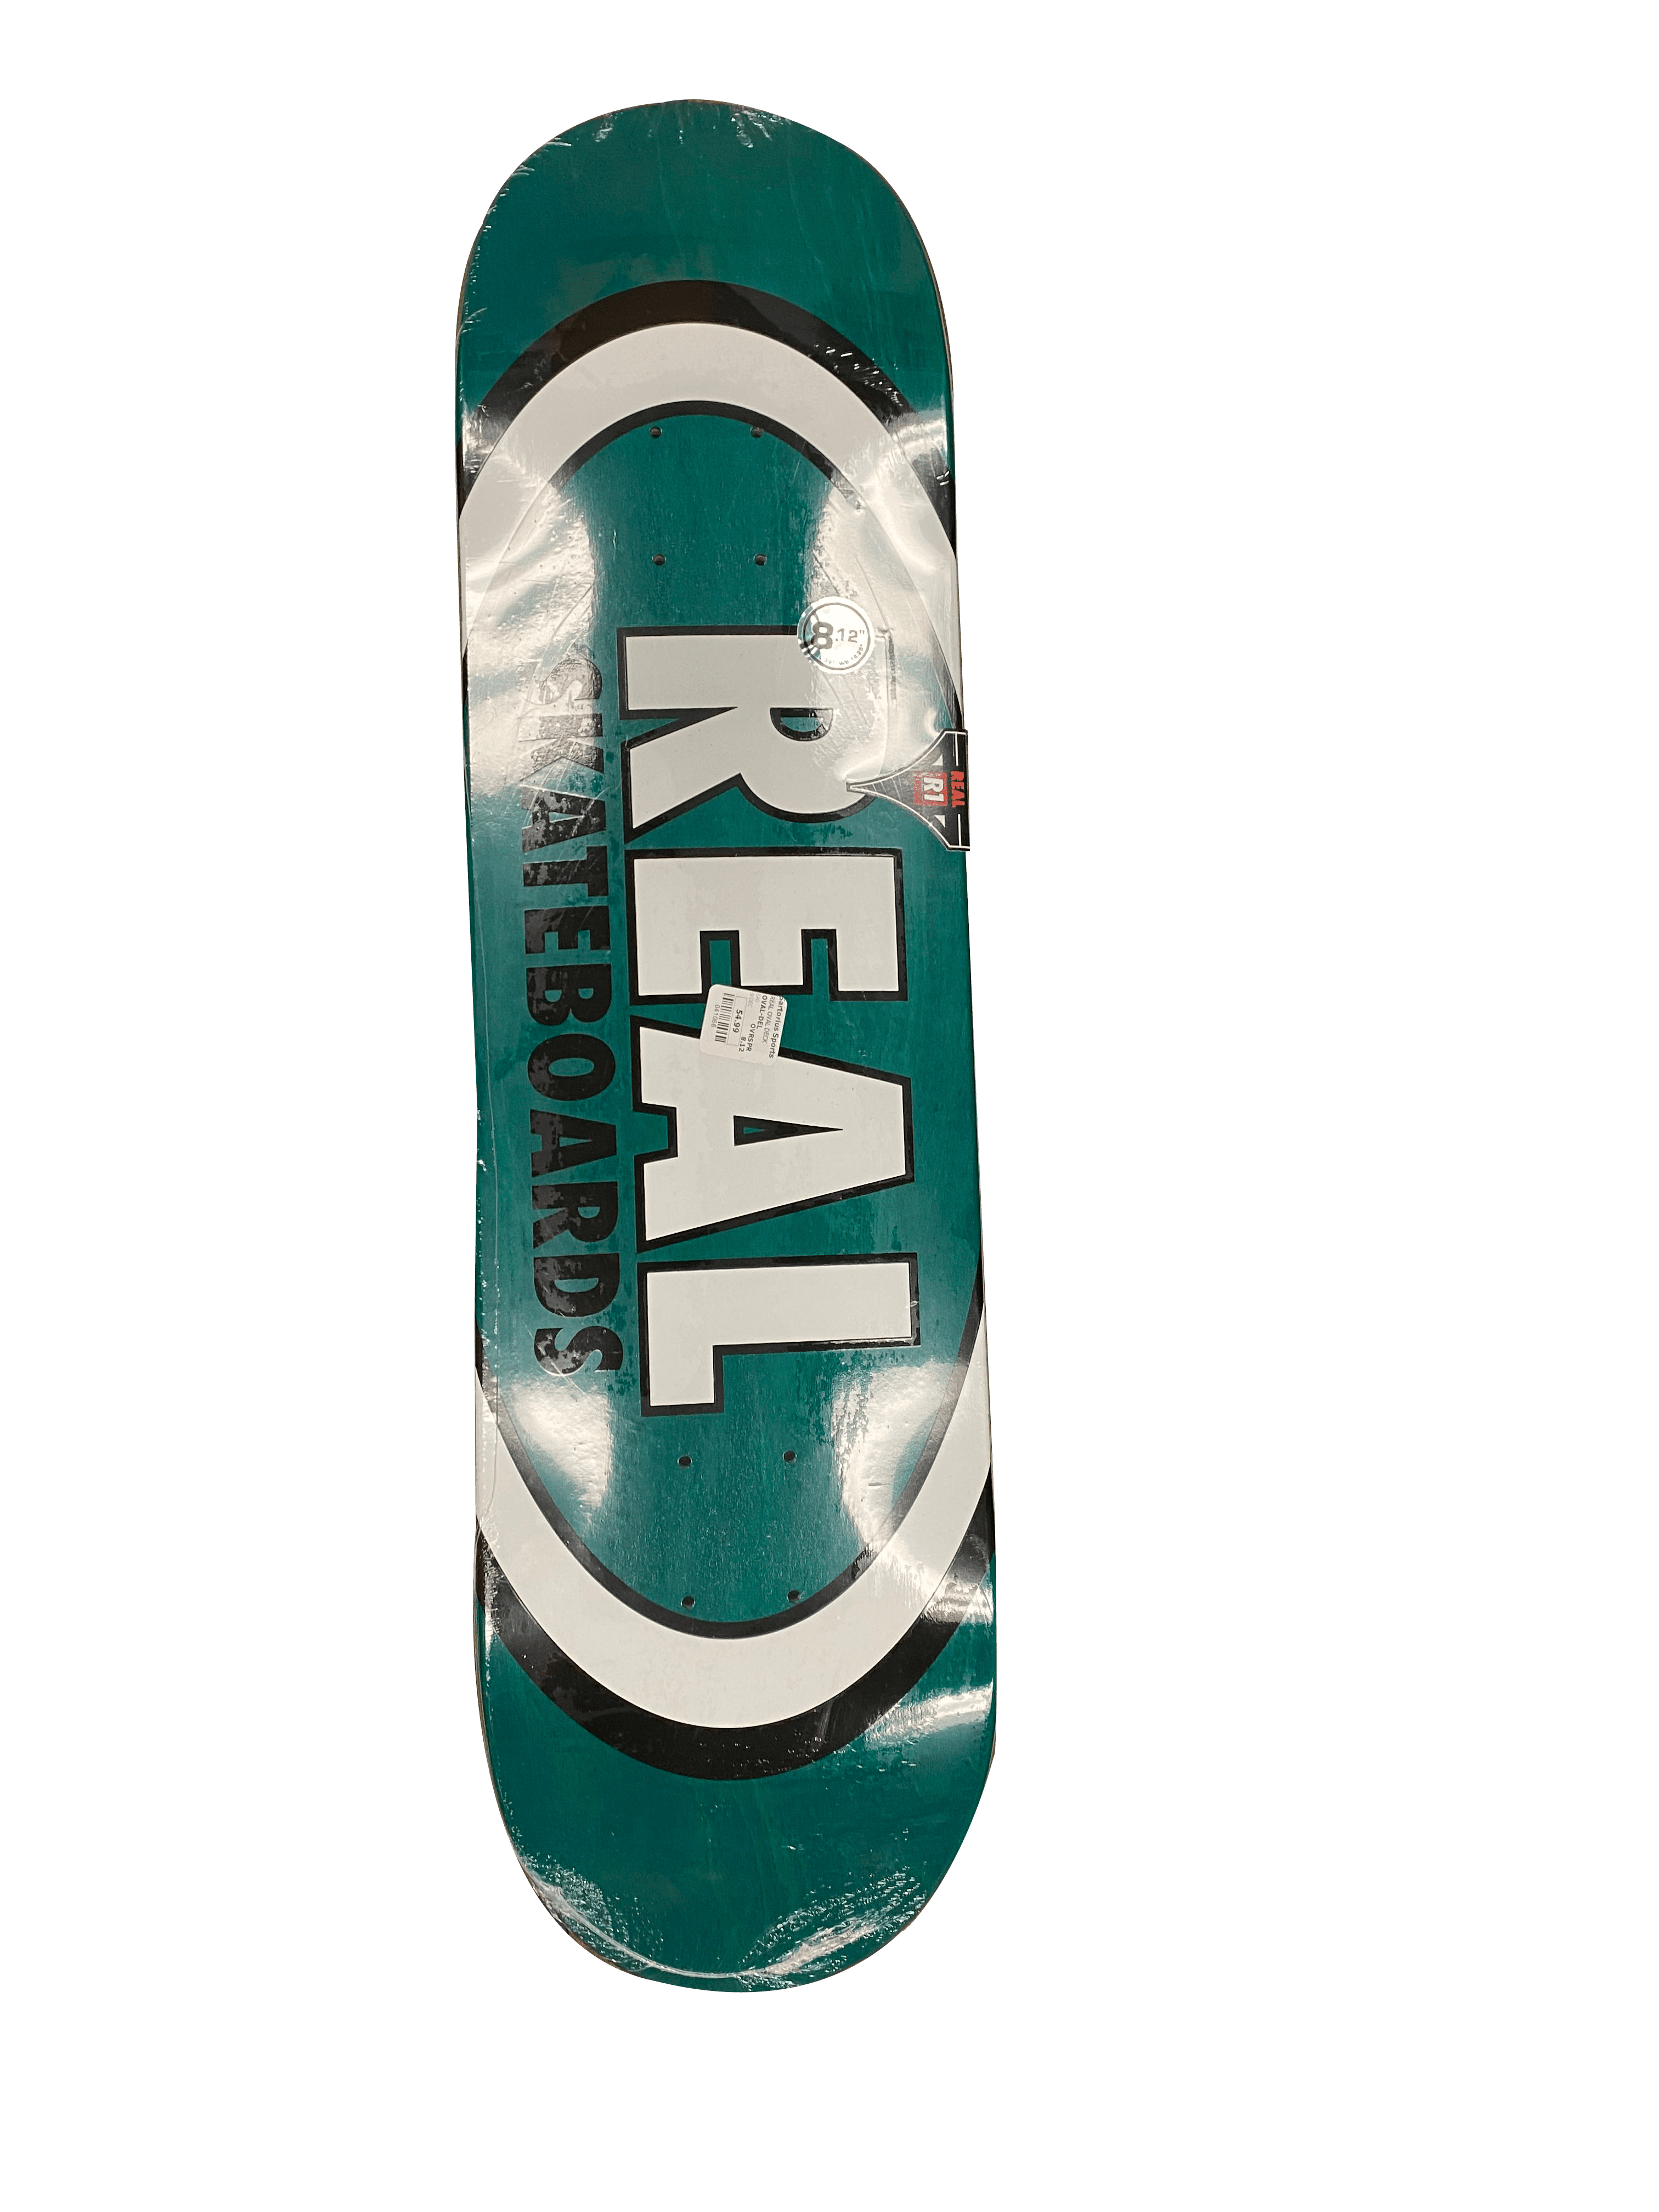 Real-Oval-Deck,-41066,-8.12,$-54